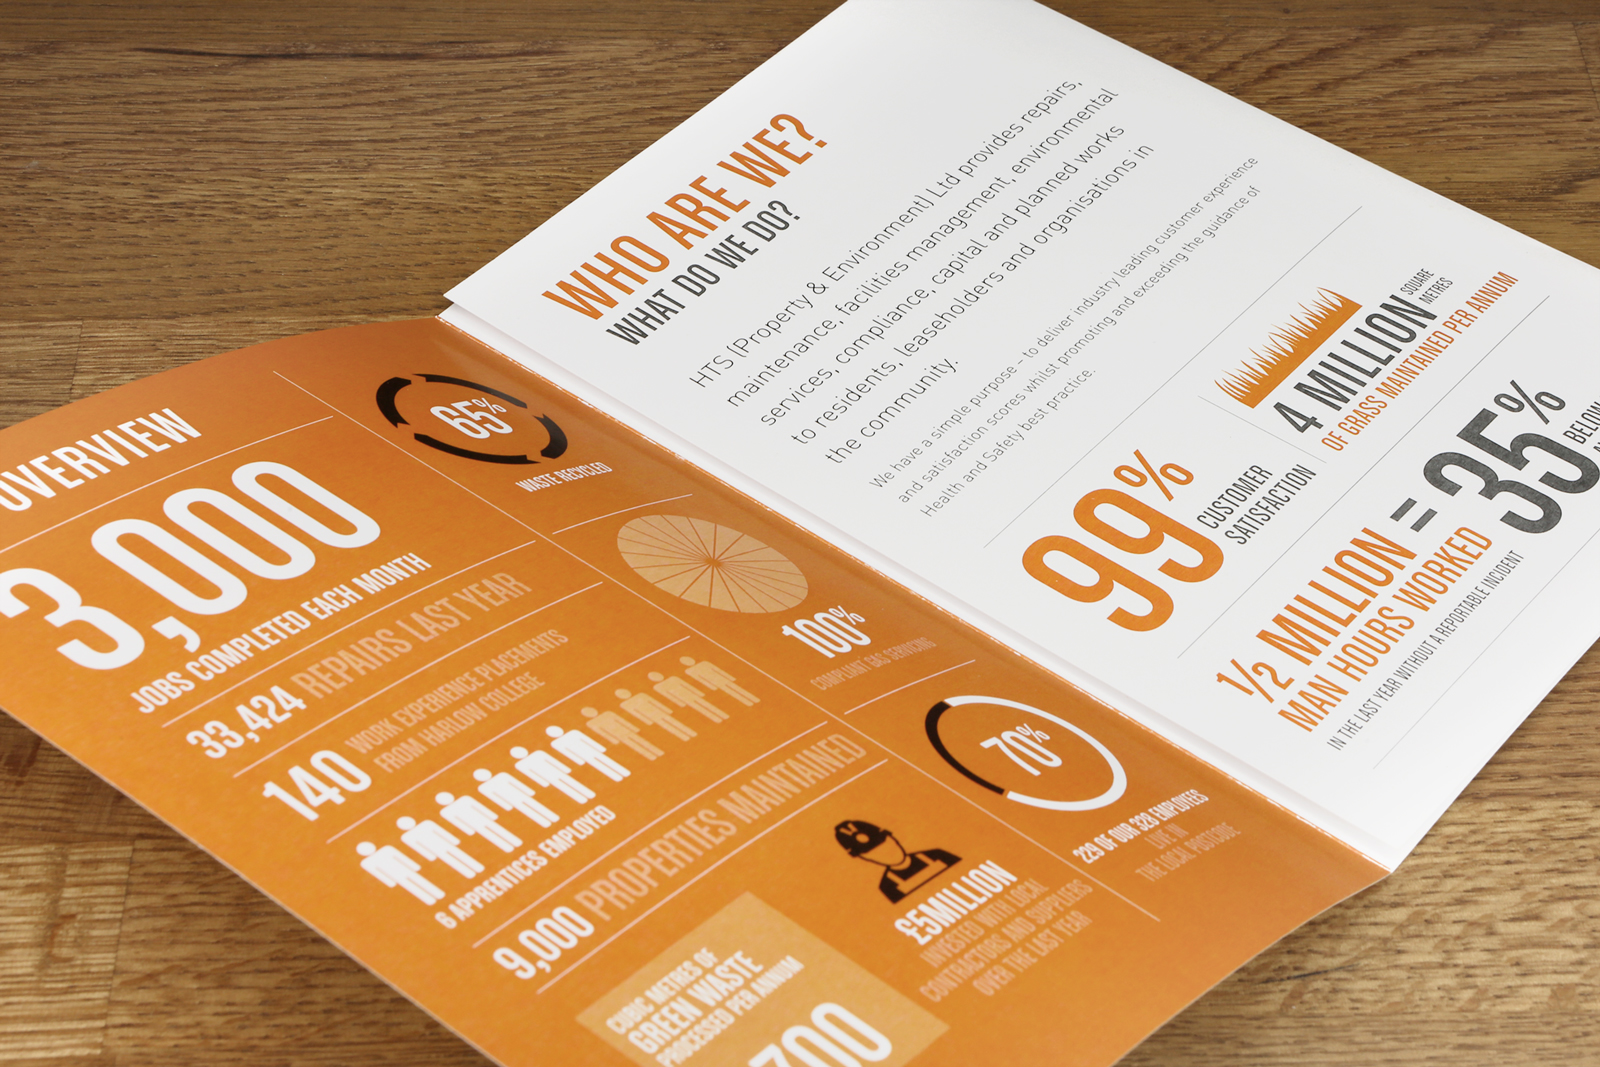 A5 leaflet design and production for HTS Group, in partnership with Magnificent Stuff, Harlow